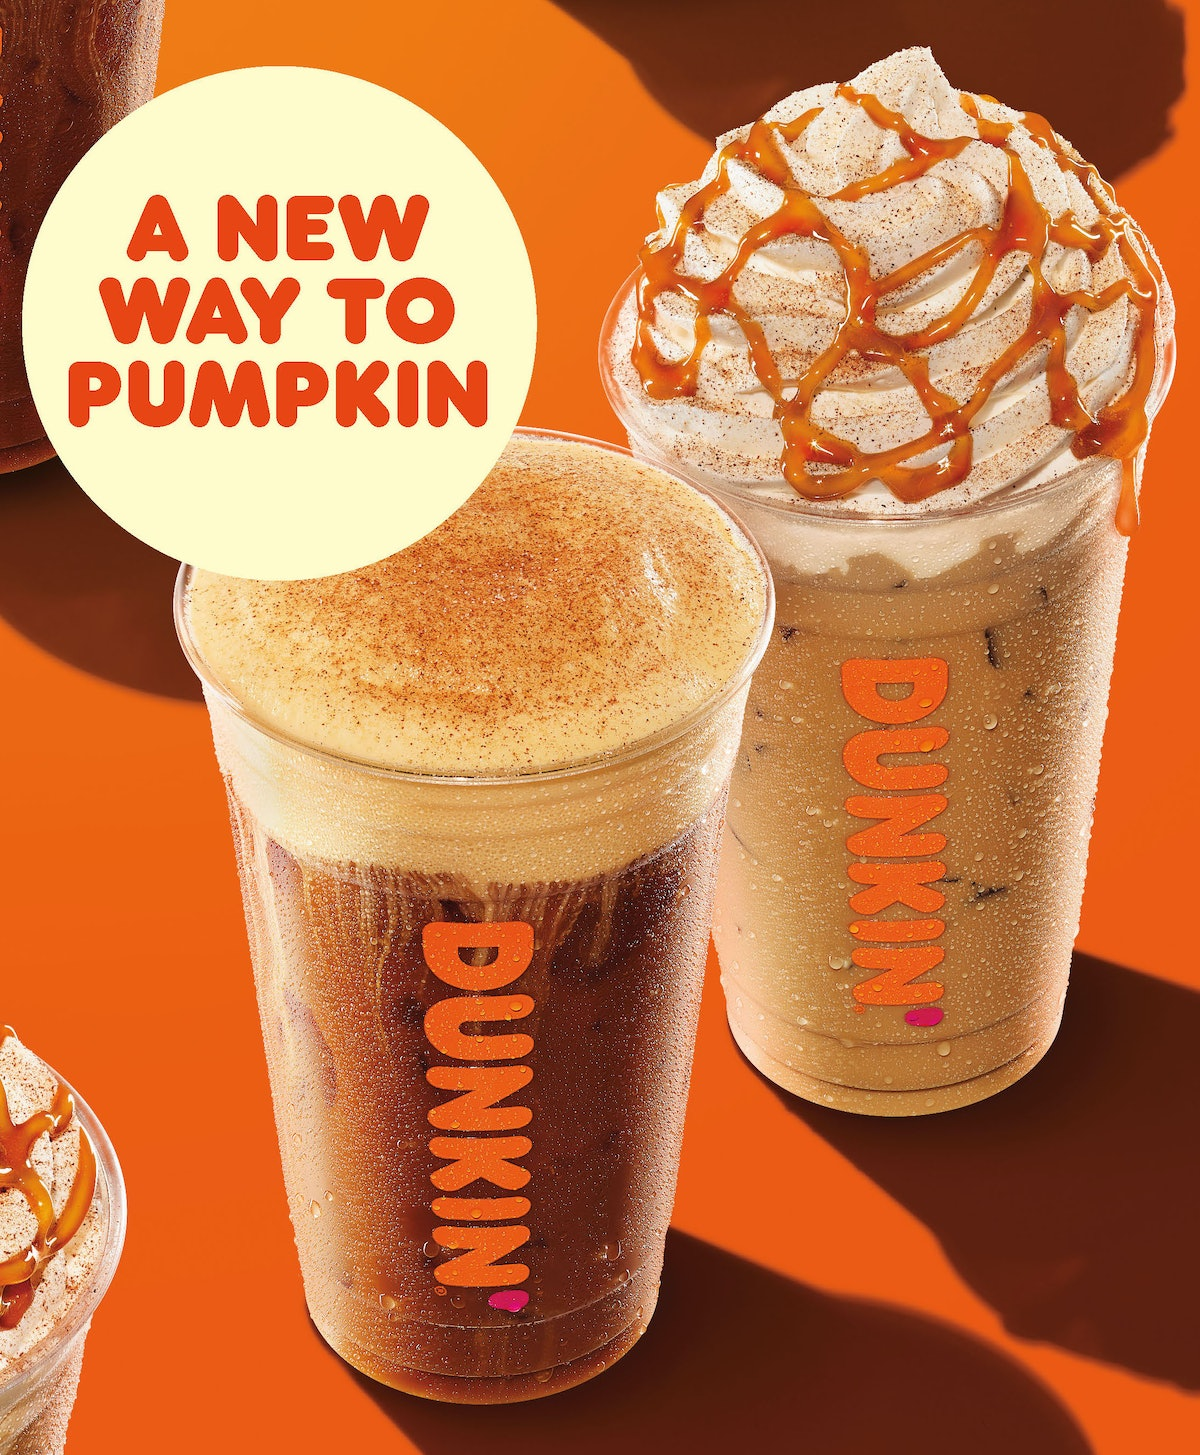 Dunkin's Pumpkin Spice Latte is coming back on Aug. 18.